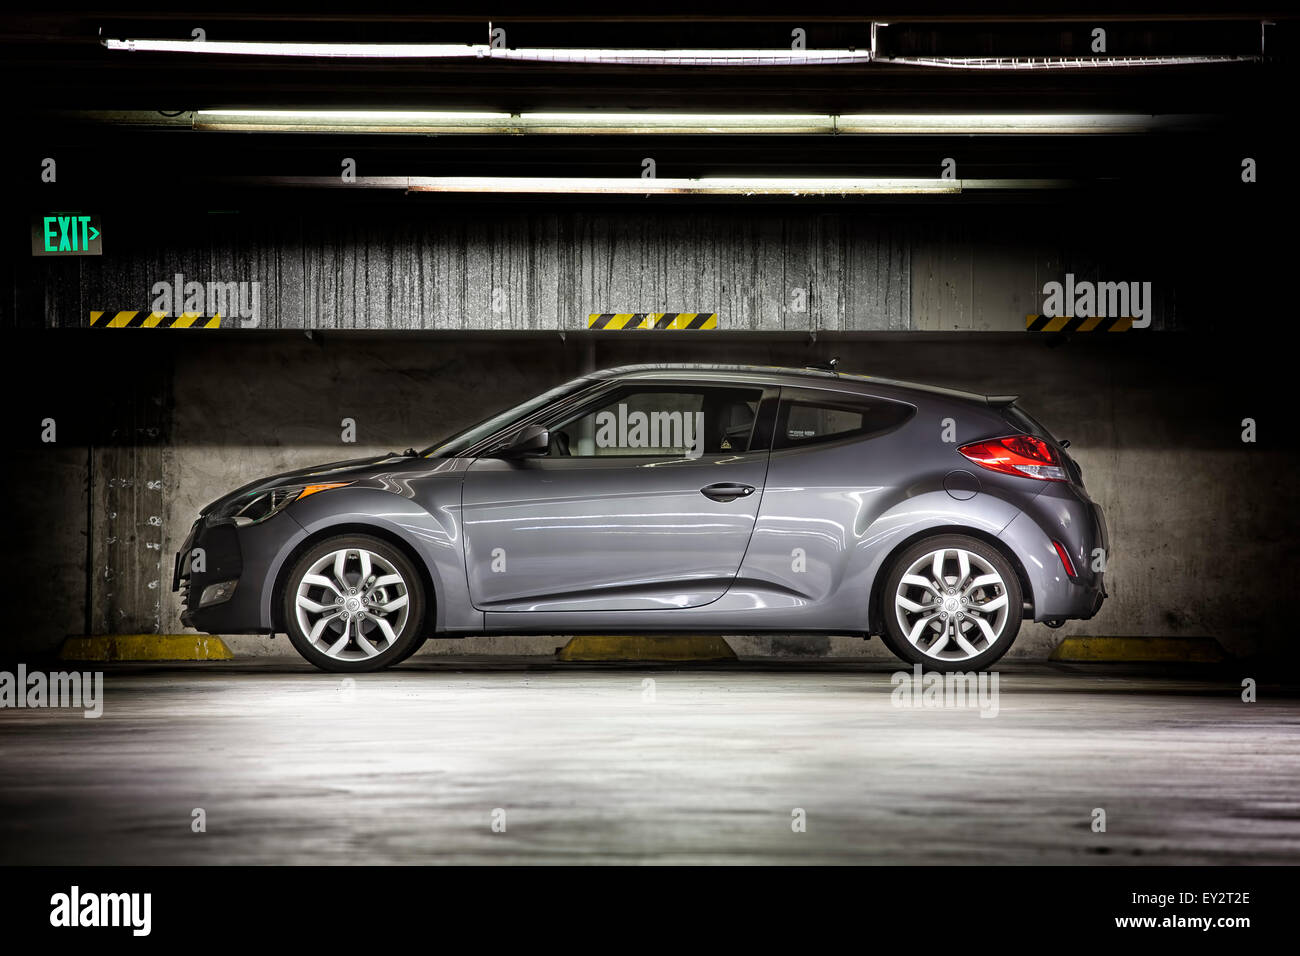 Hyundai veloster parked at night in a multi story garage under